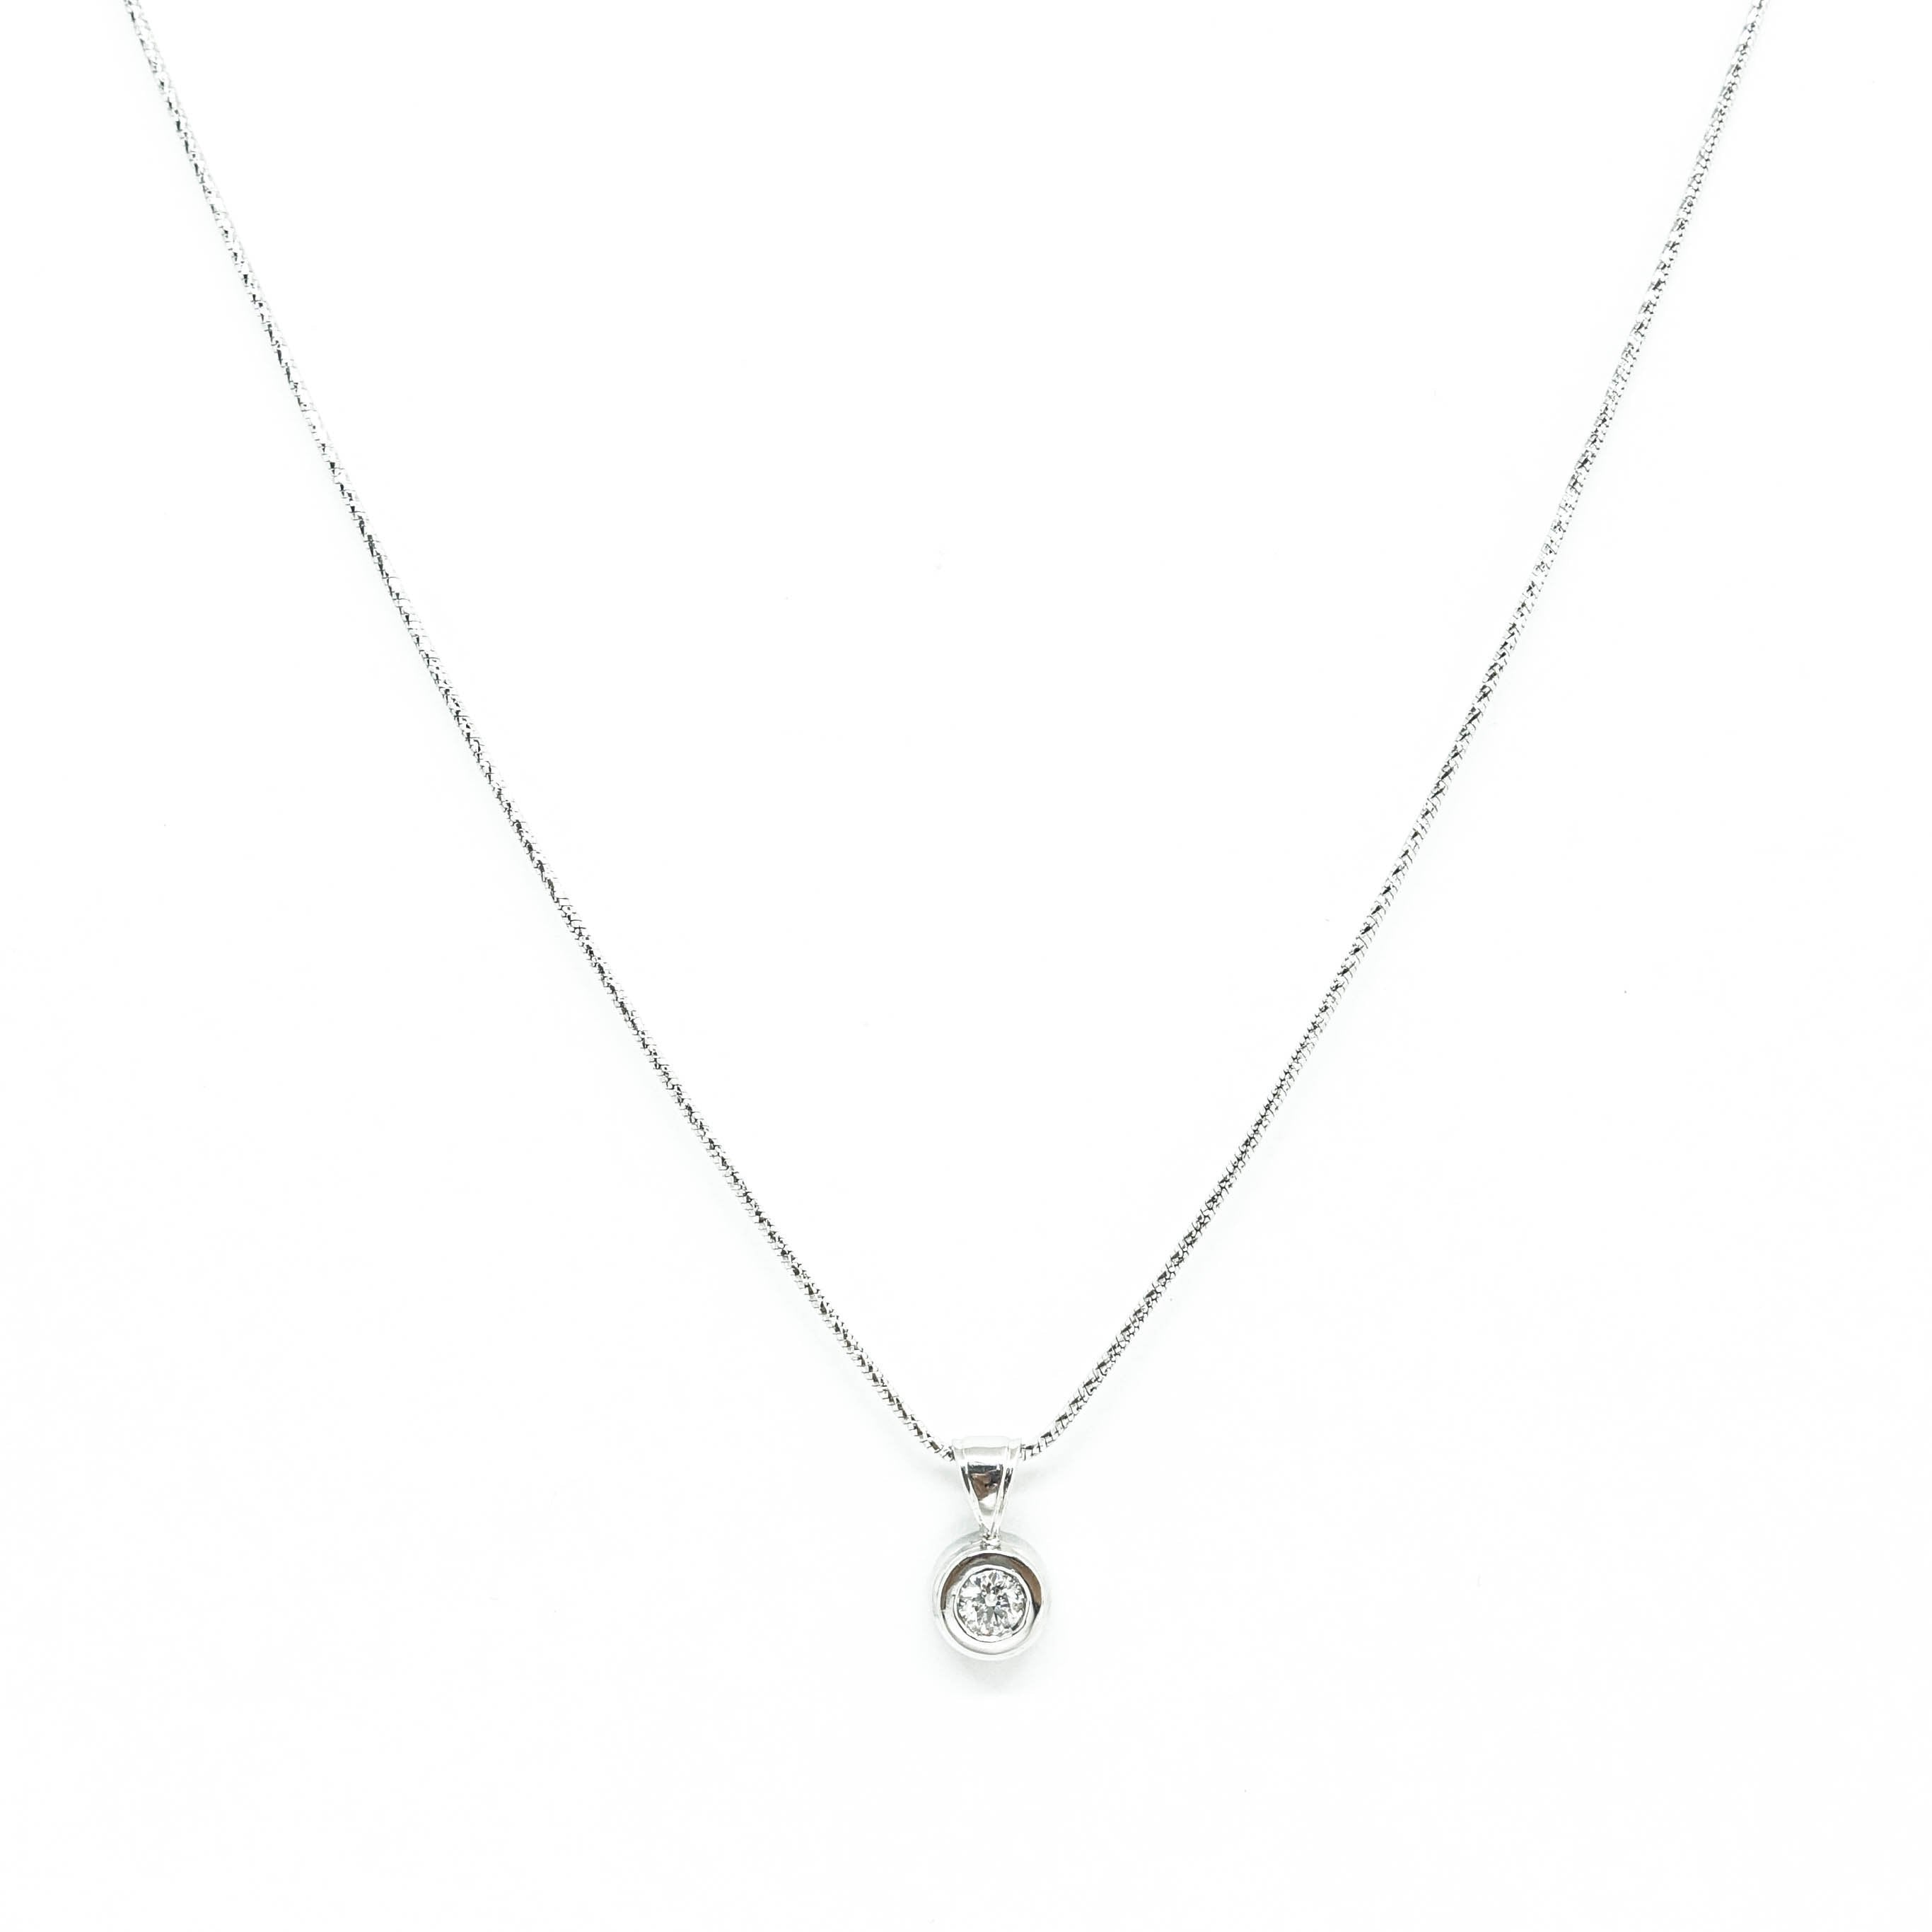 necklace white in gold solitaire diamond